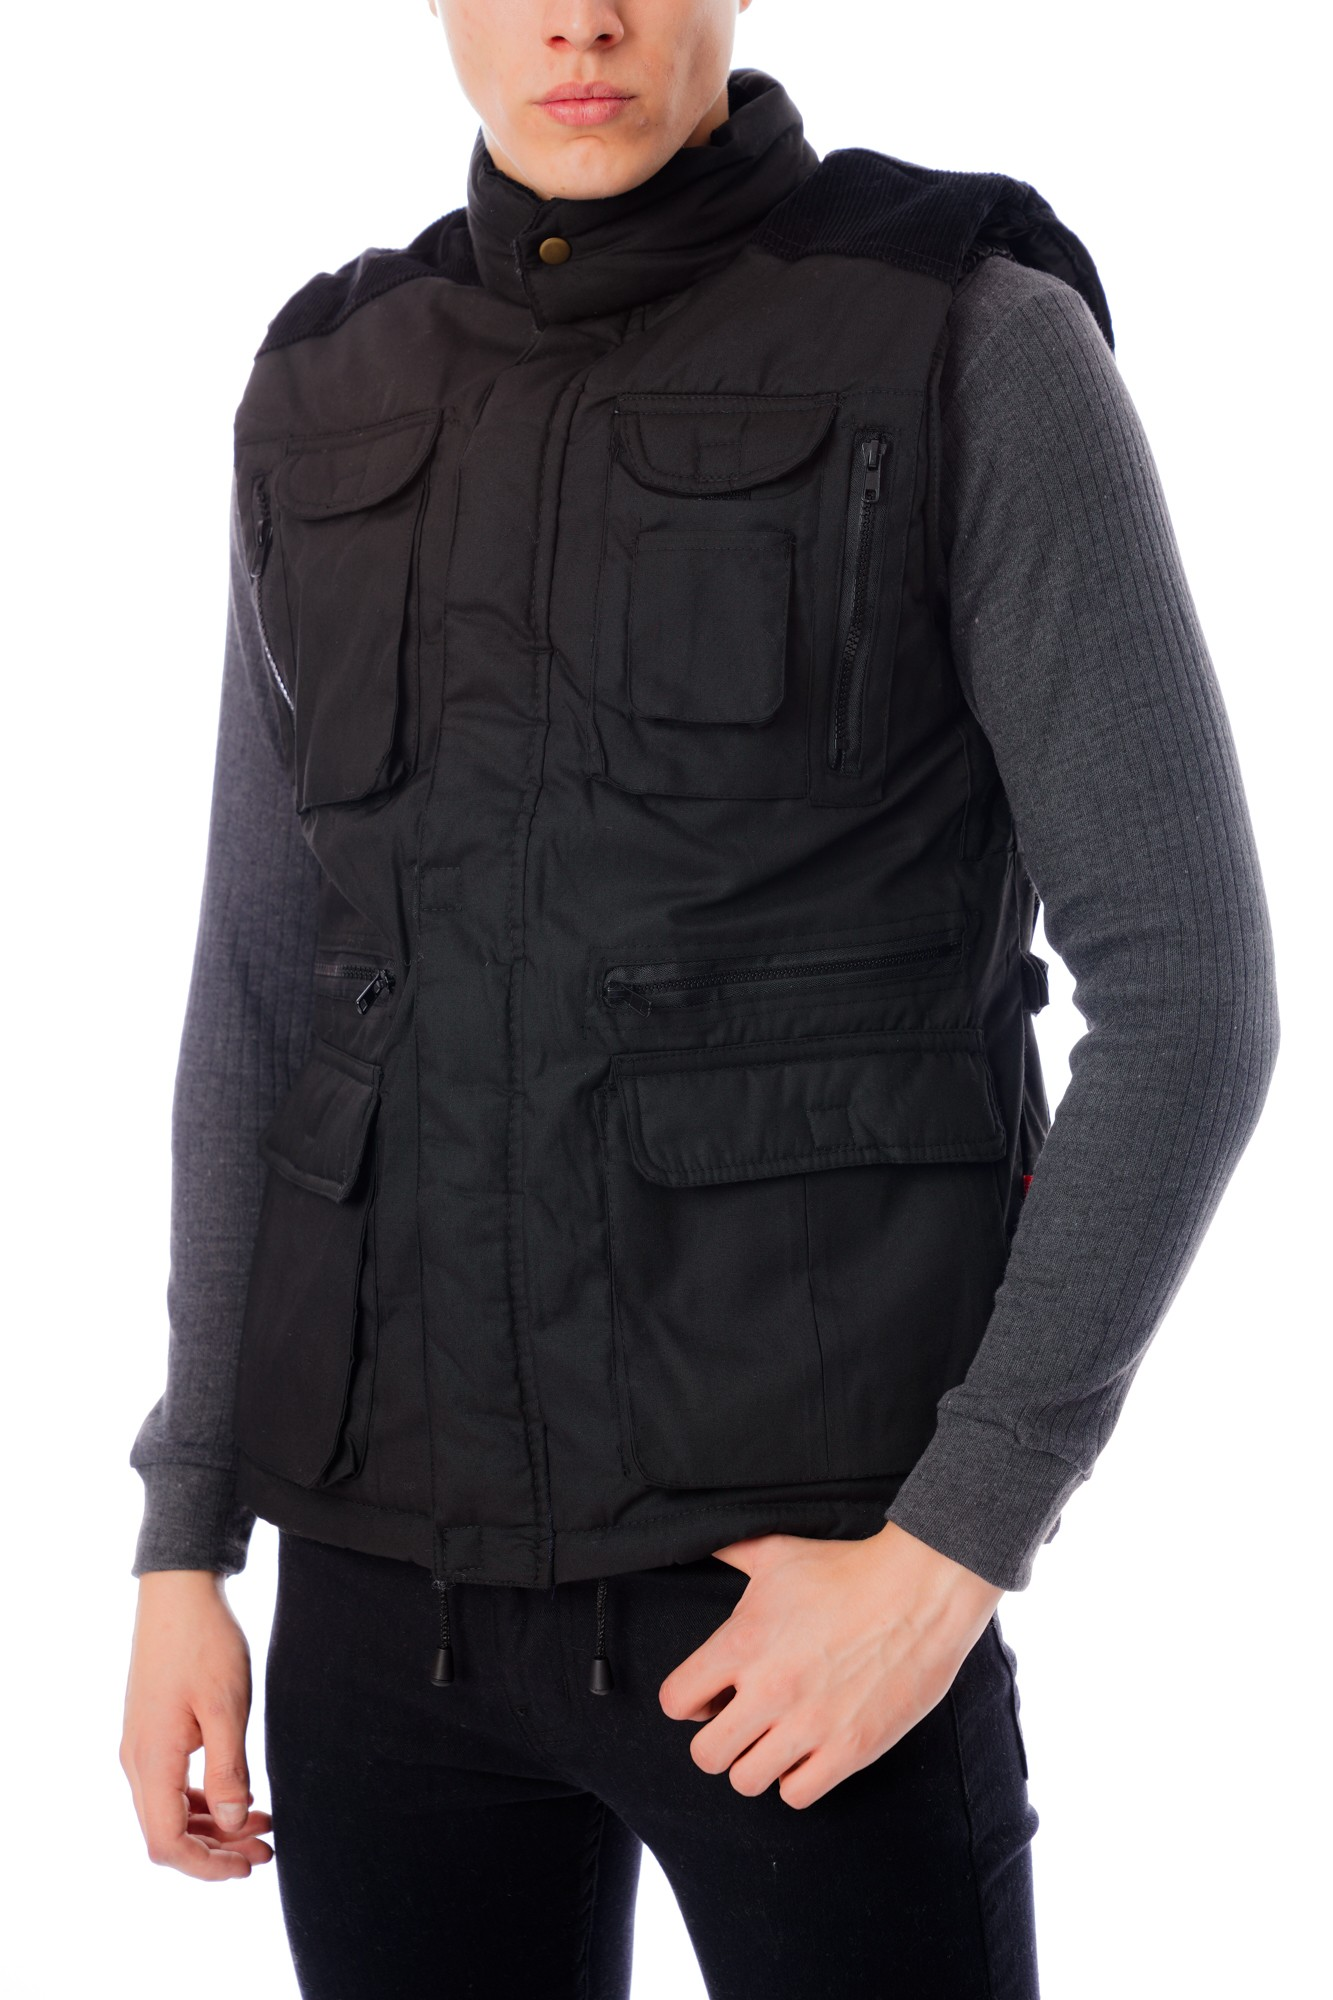 Cord Trim Body warmer